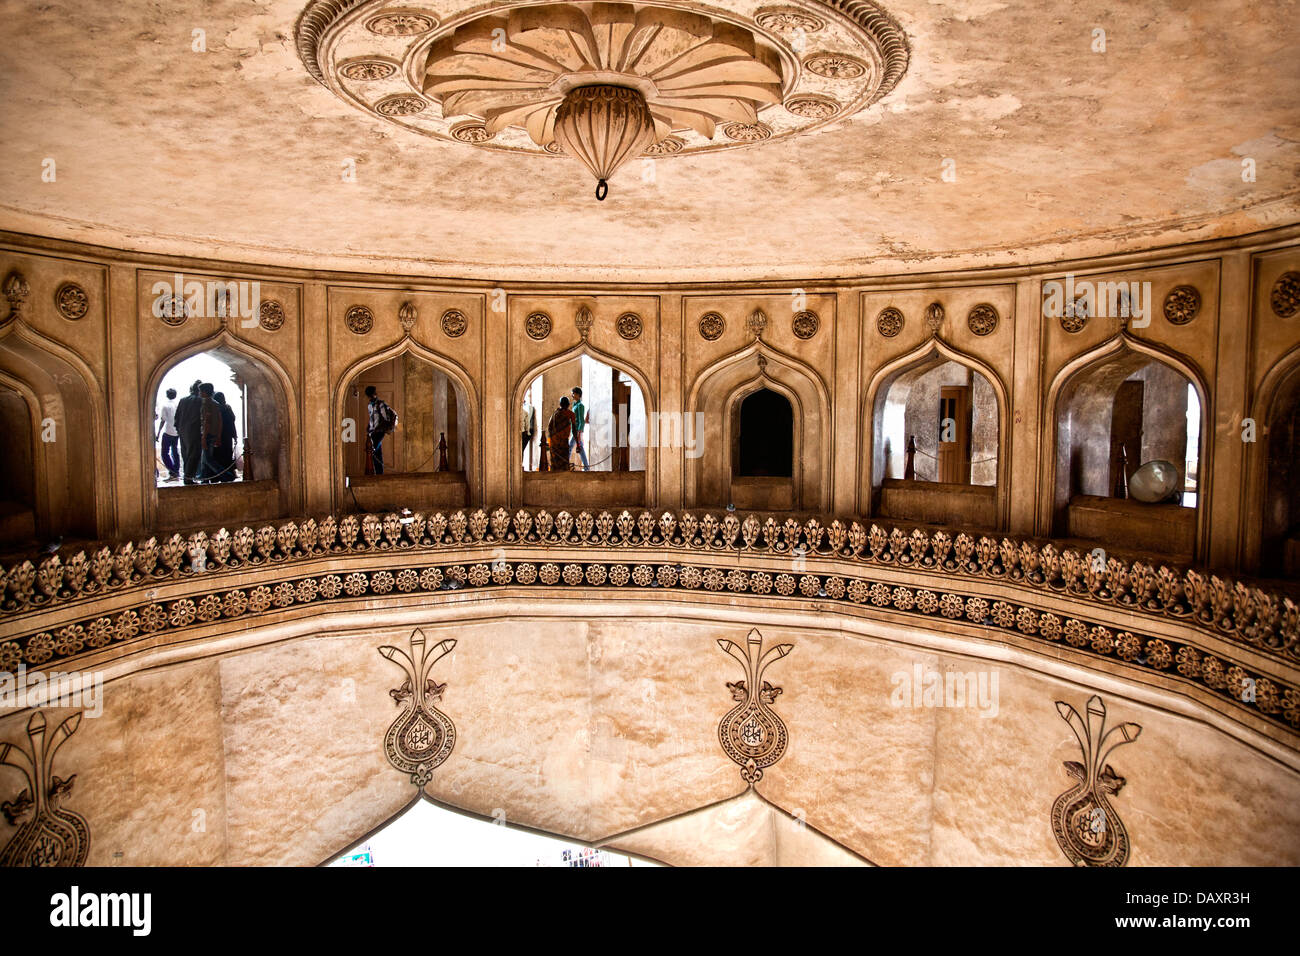 Interior Of The Charminar Charminar Hyderabad Andhra Pradesh Stock Photo Alamy